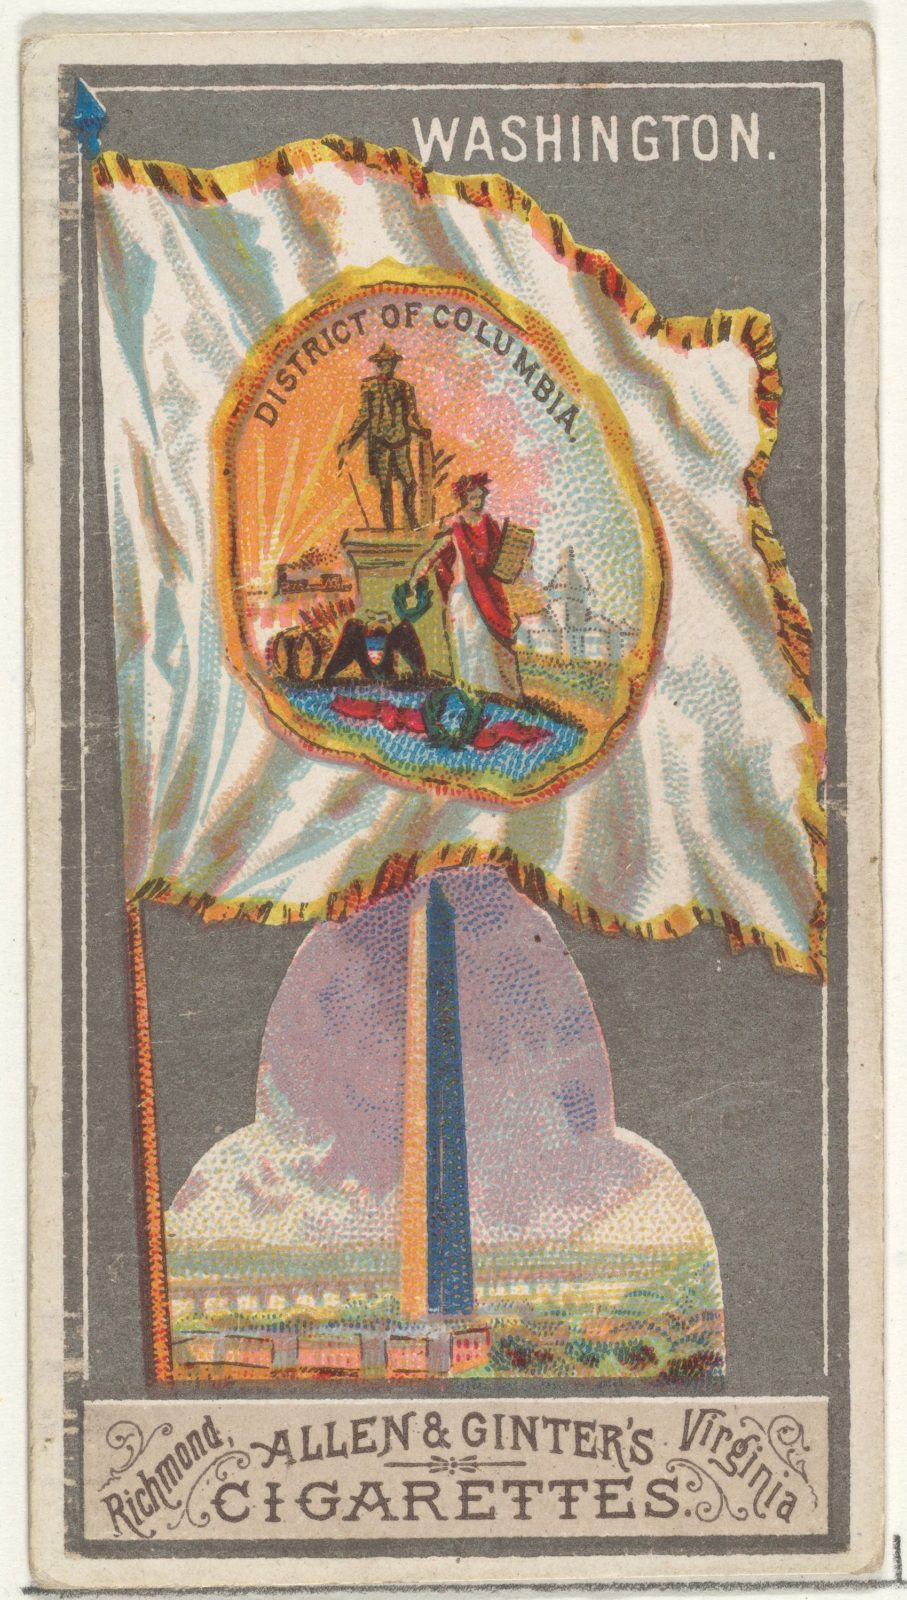 Washington, from the City Flags series (N6) for Allen & Ginter Cigarettes Brands